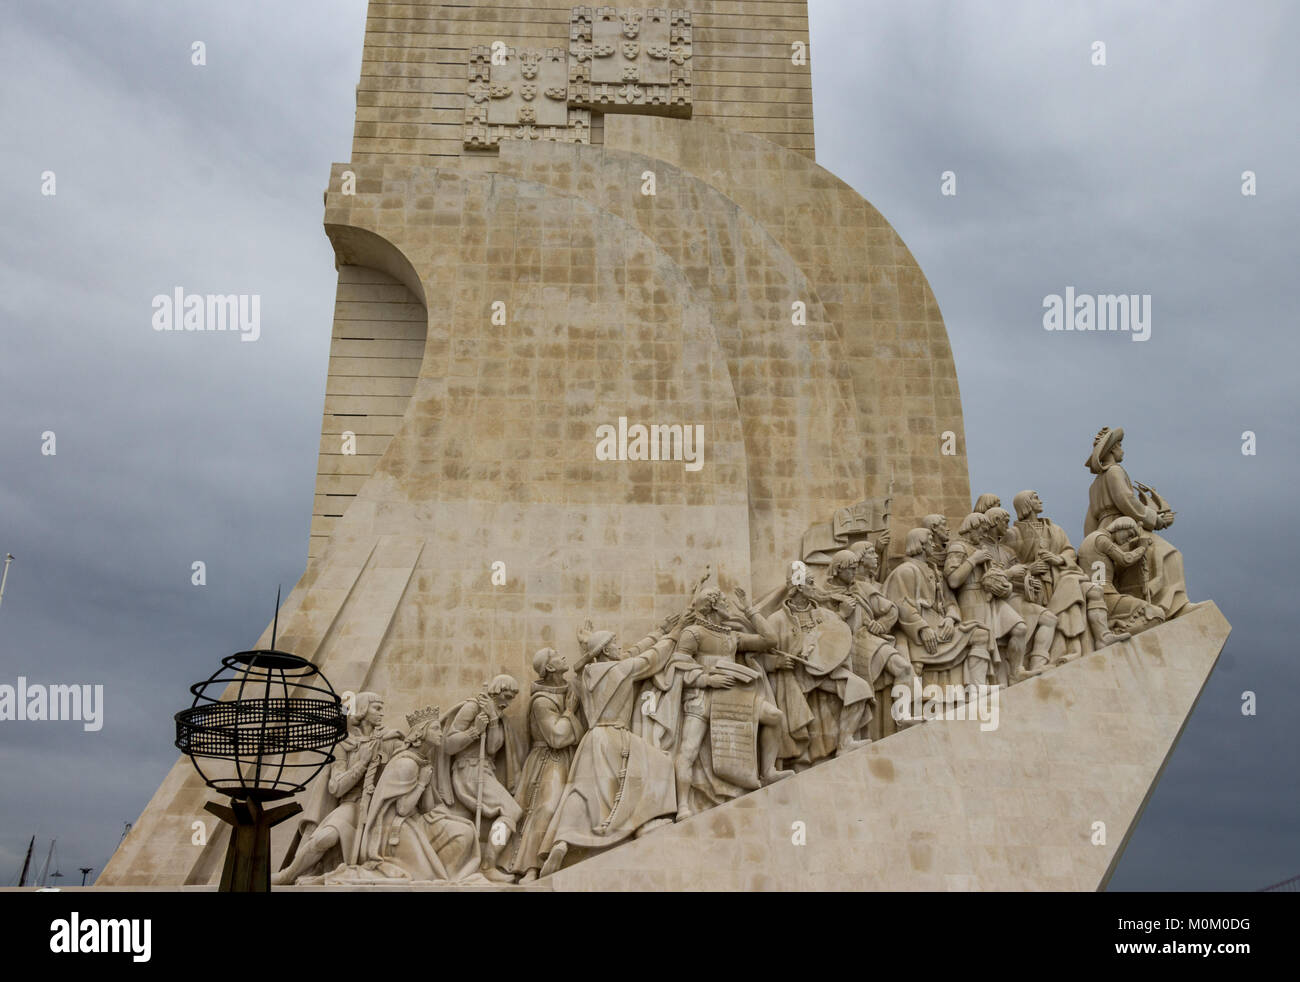 Monument to the Discoveries Belem Lisbon Portugal Stock Photo